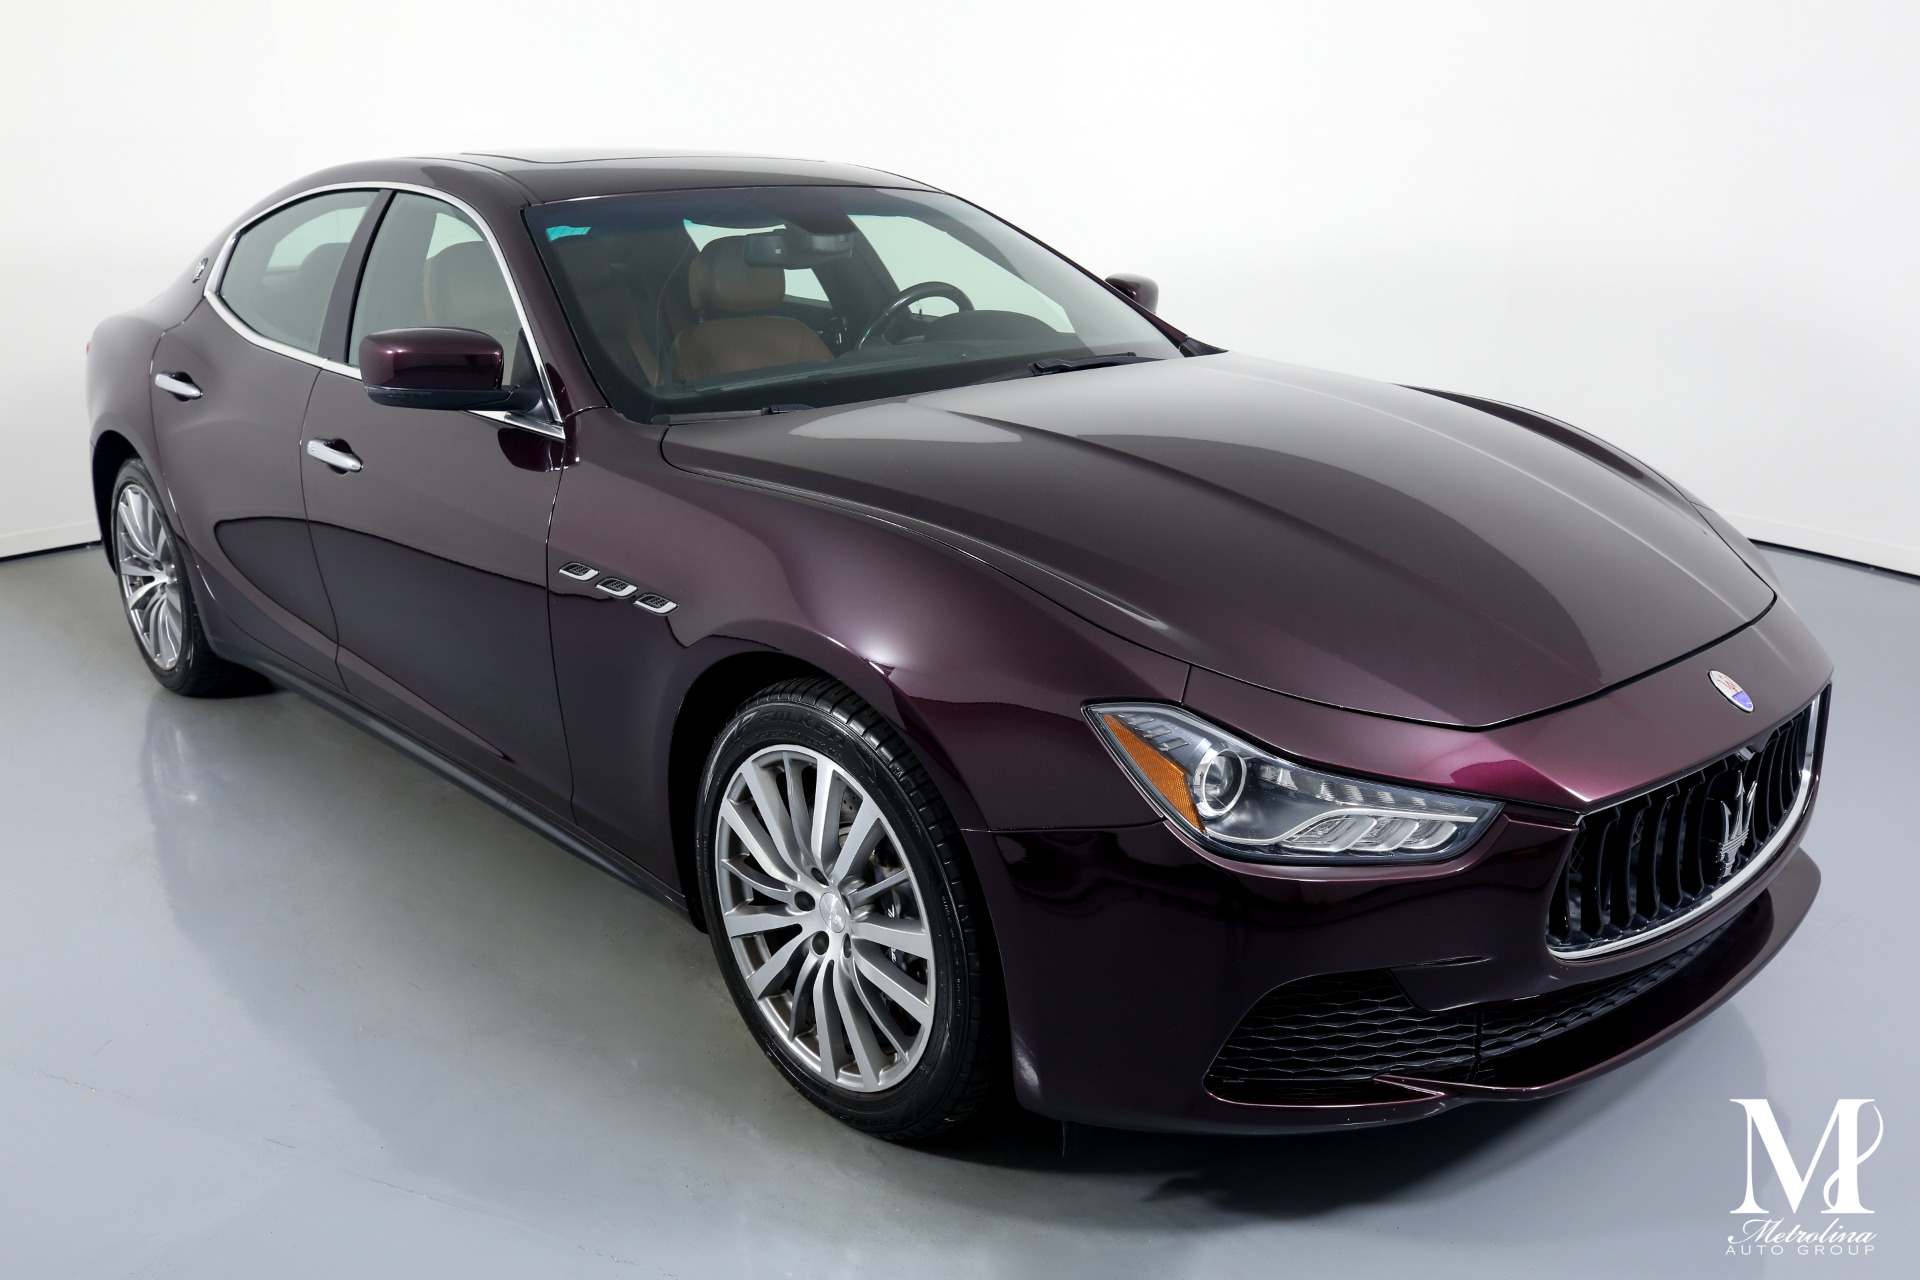 Used 2015 Maserati Ghibli S Q4 for sale Call for price at Metrolina Auto Group in Charlotte NC 28217 - 2